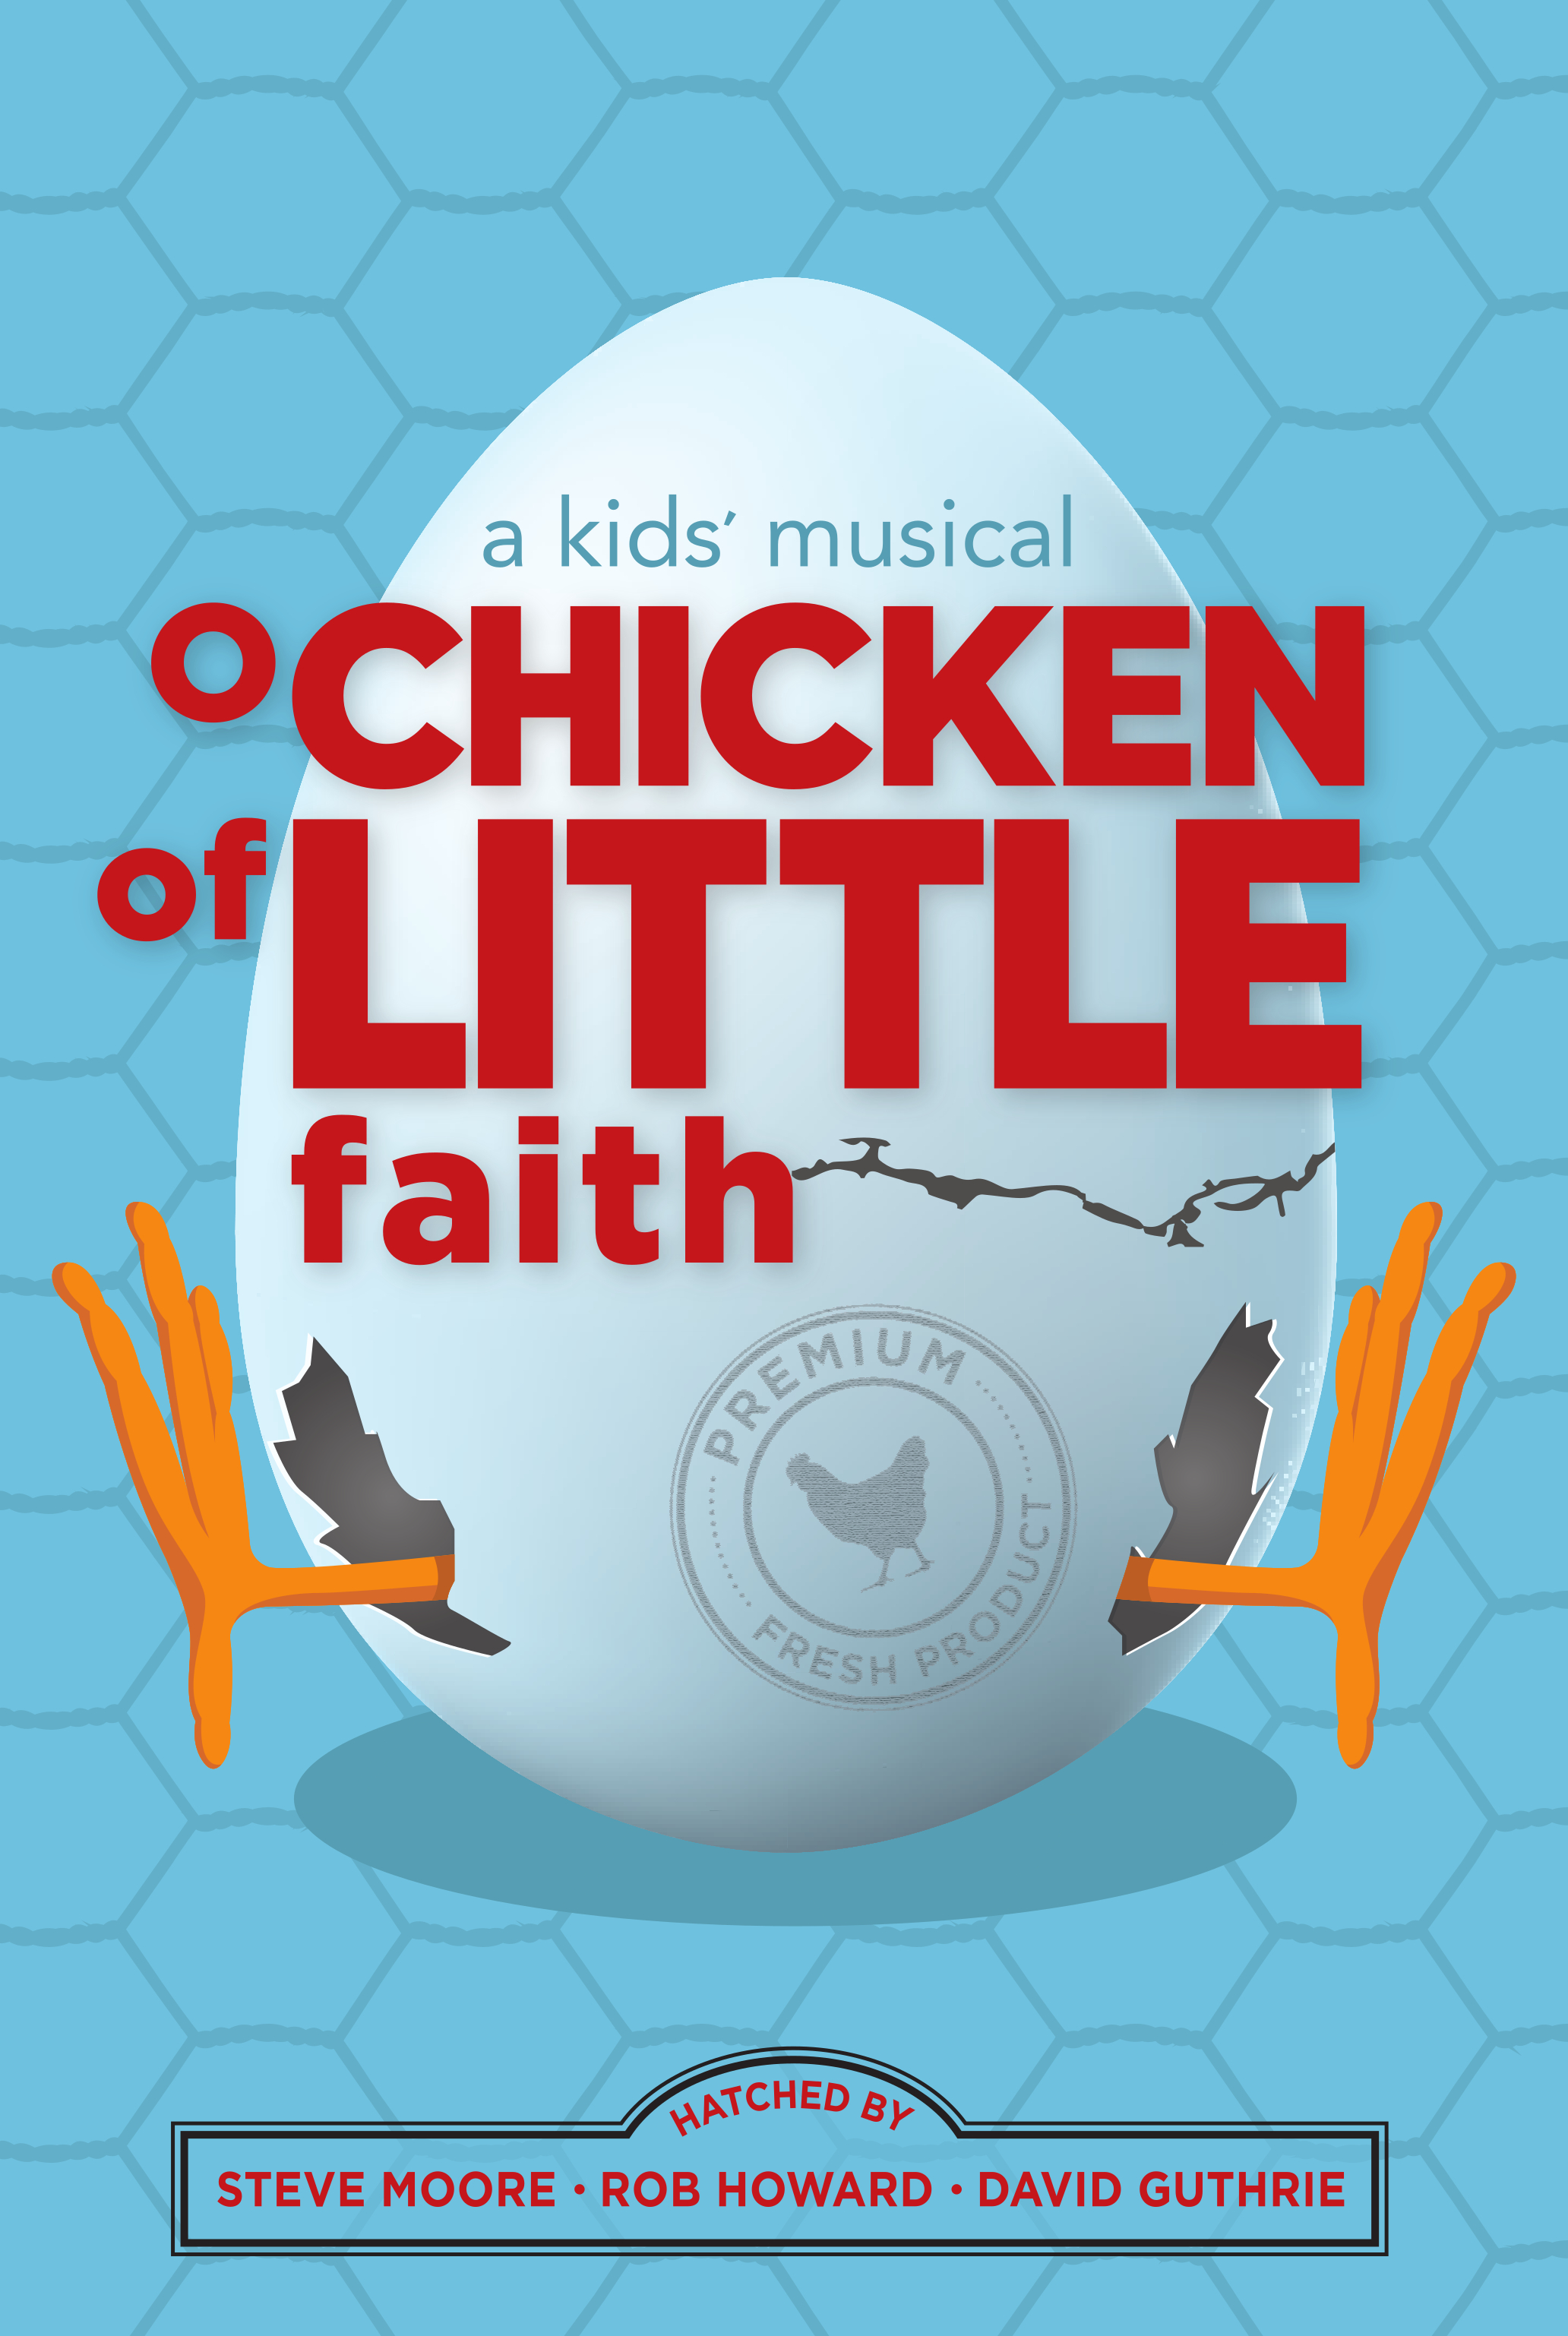 O chicken of little faith choral book cover